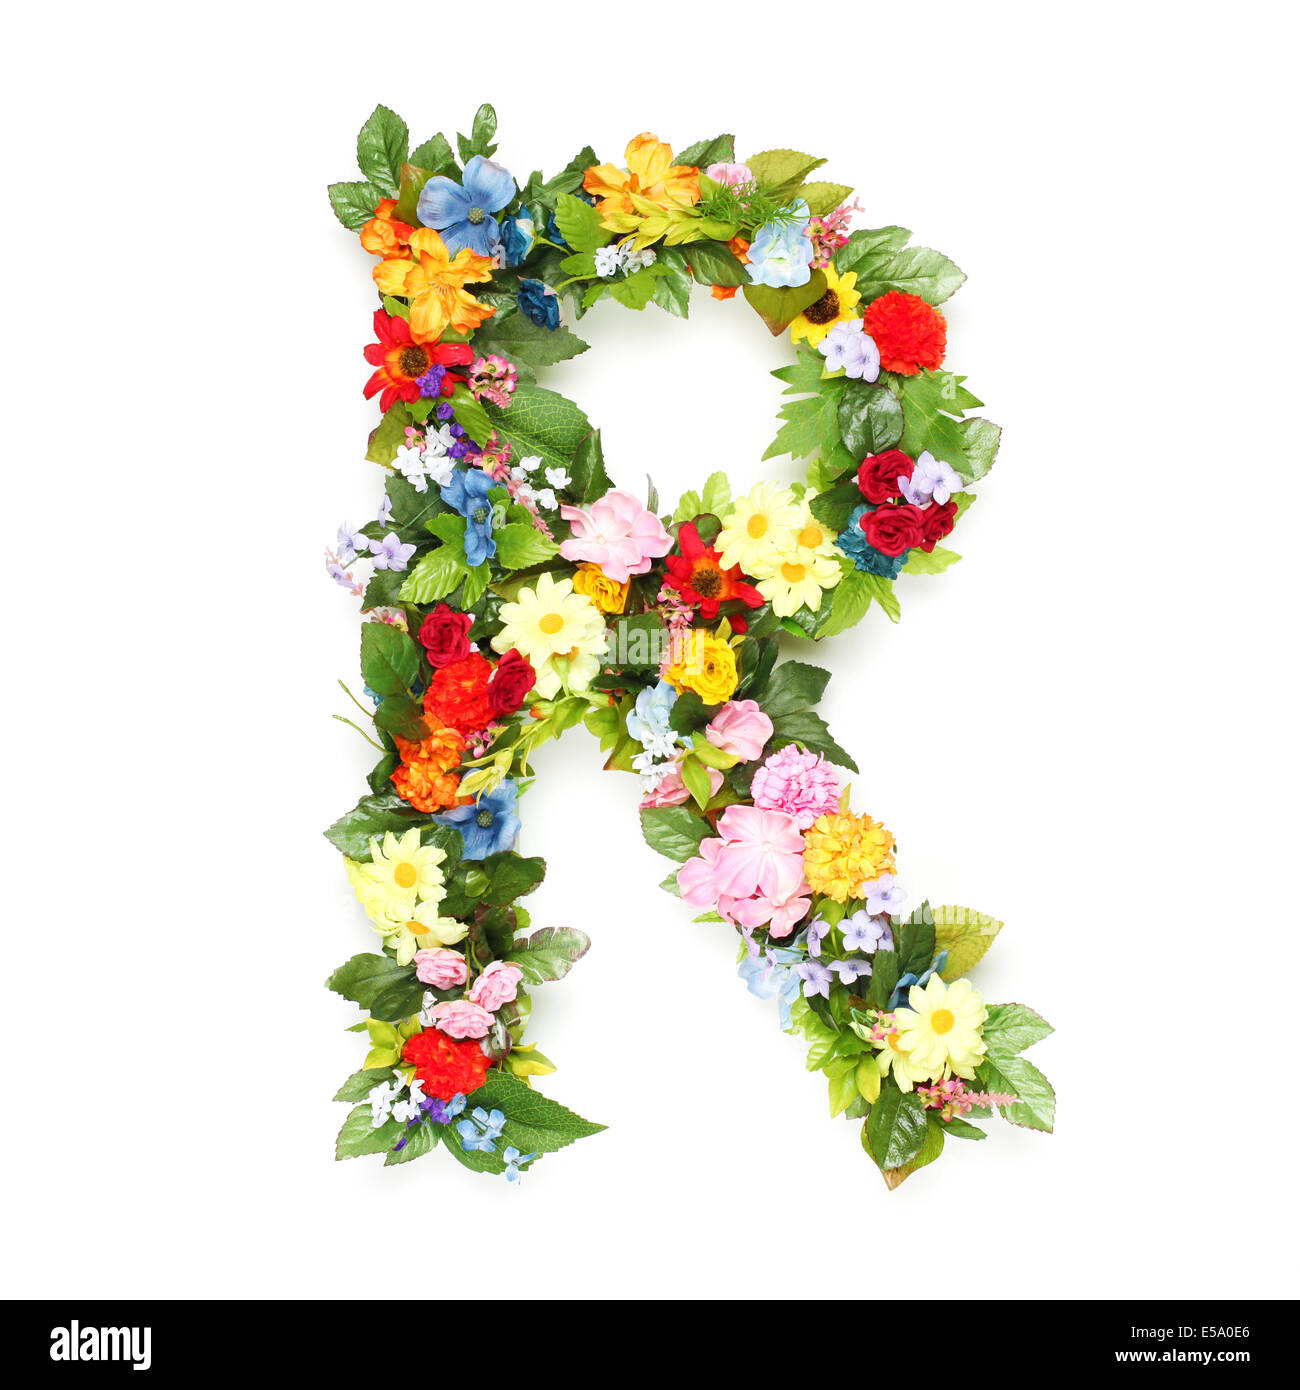 Vector spring alphabet flowers letters r stock photos vector letters made of leaves and flowers stock image altavistaventures Choice Image